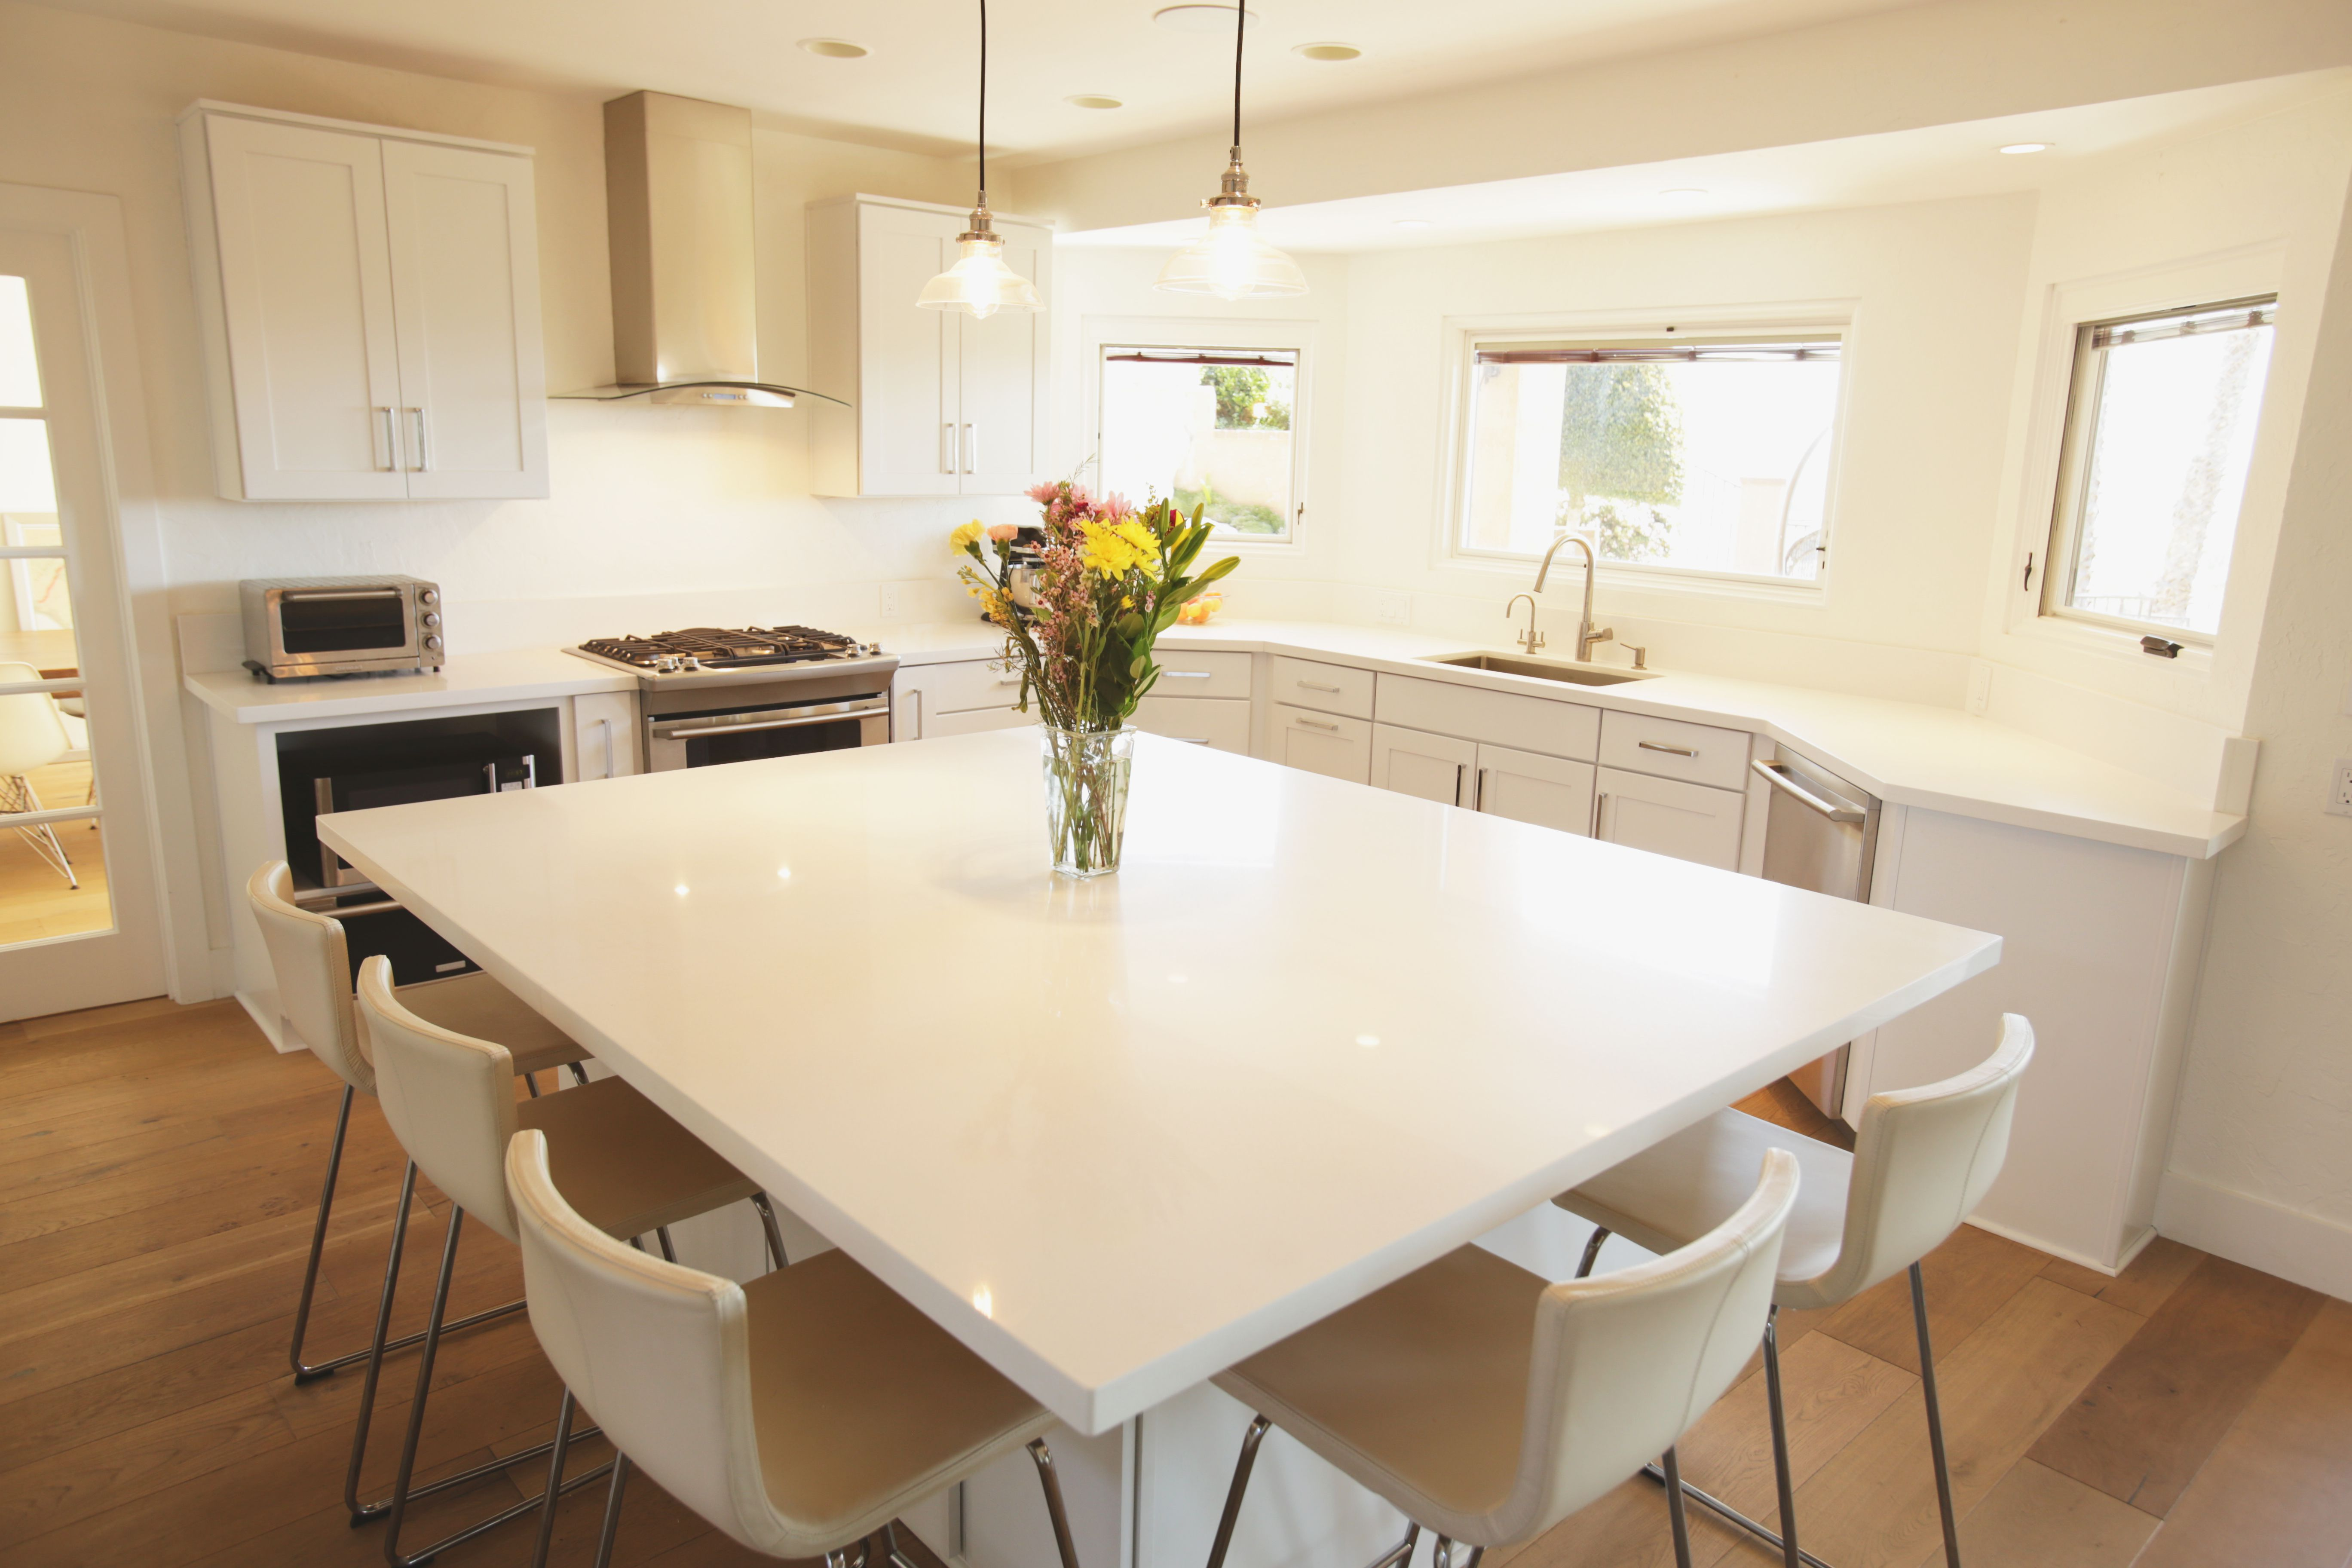 Gallery | Anew Kitchen Inc